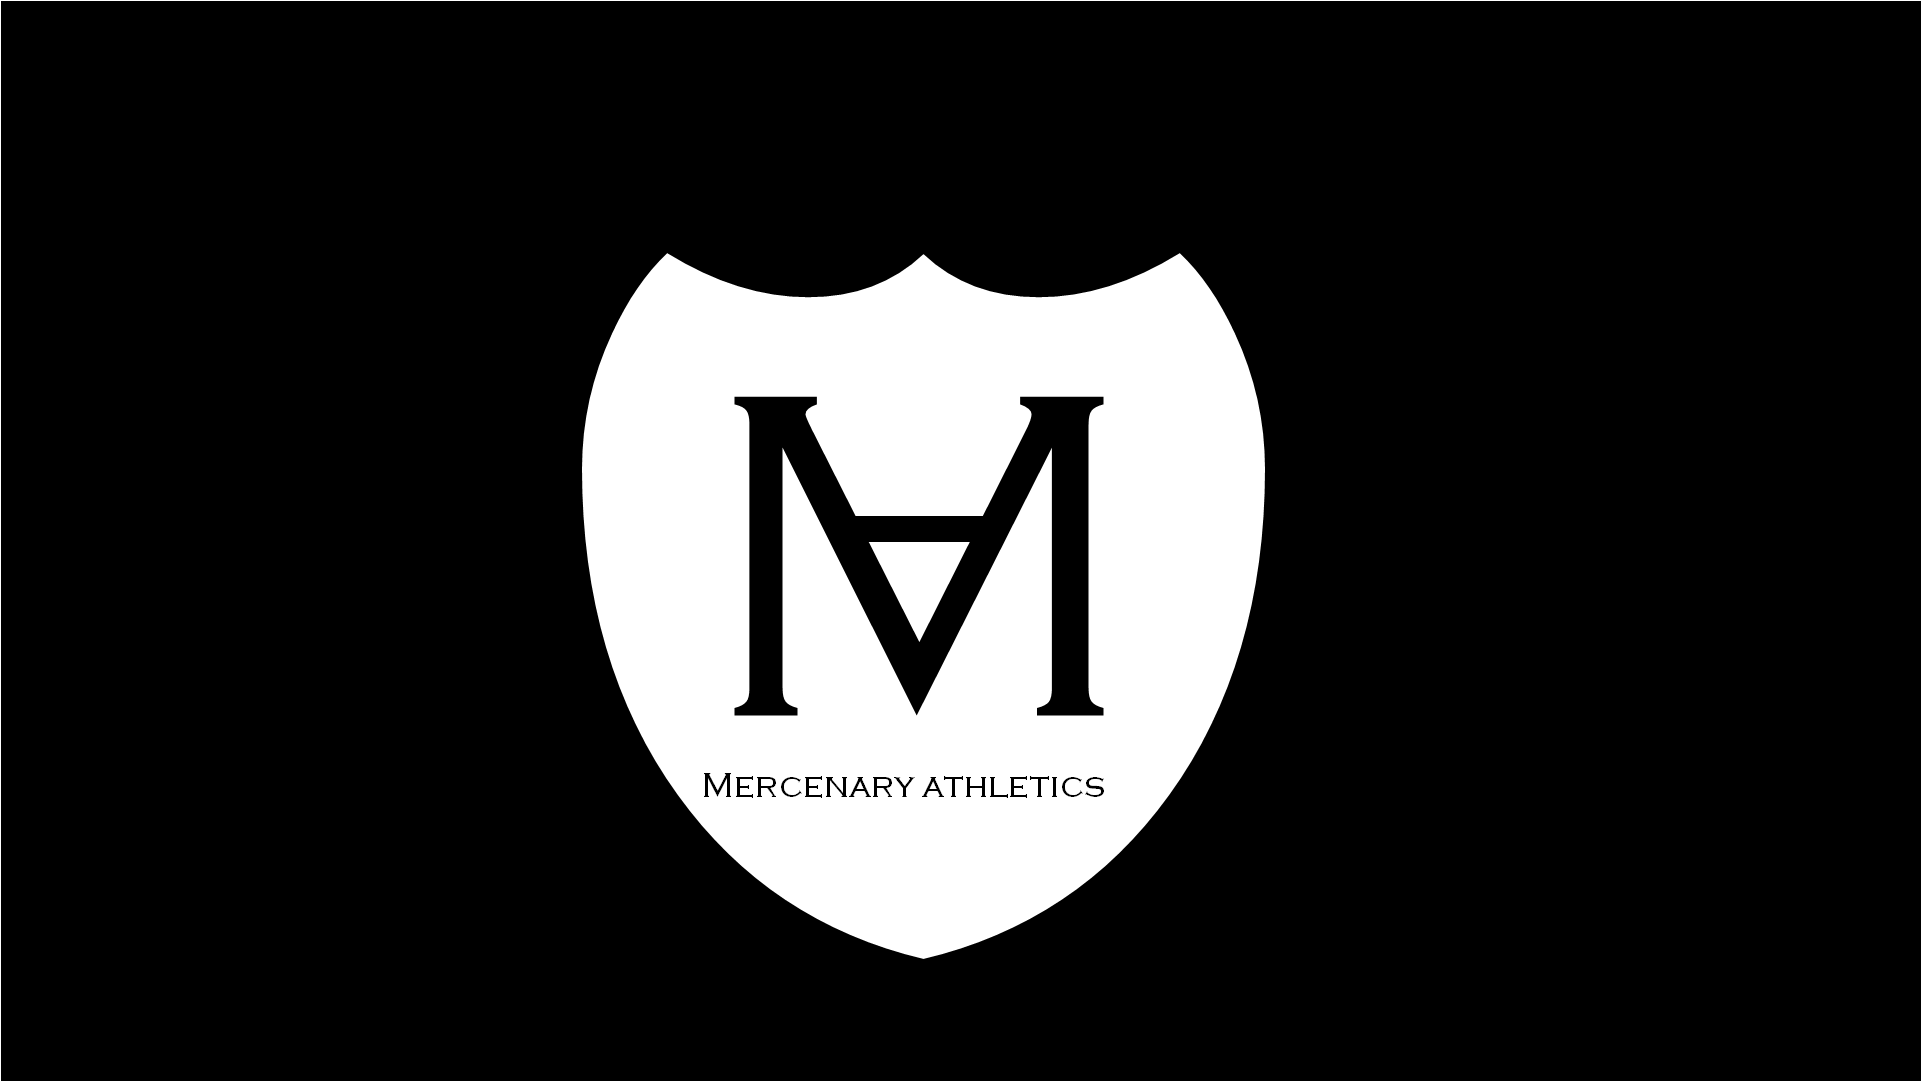 Mercenary Athletics (White shield) Image